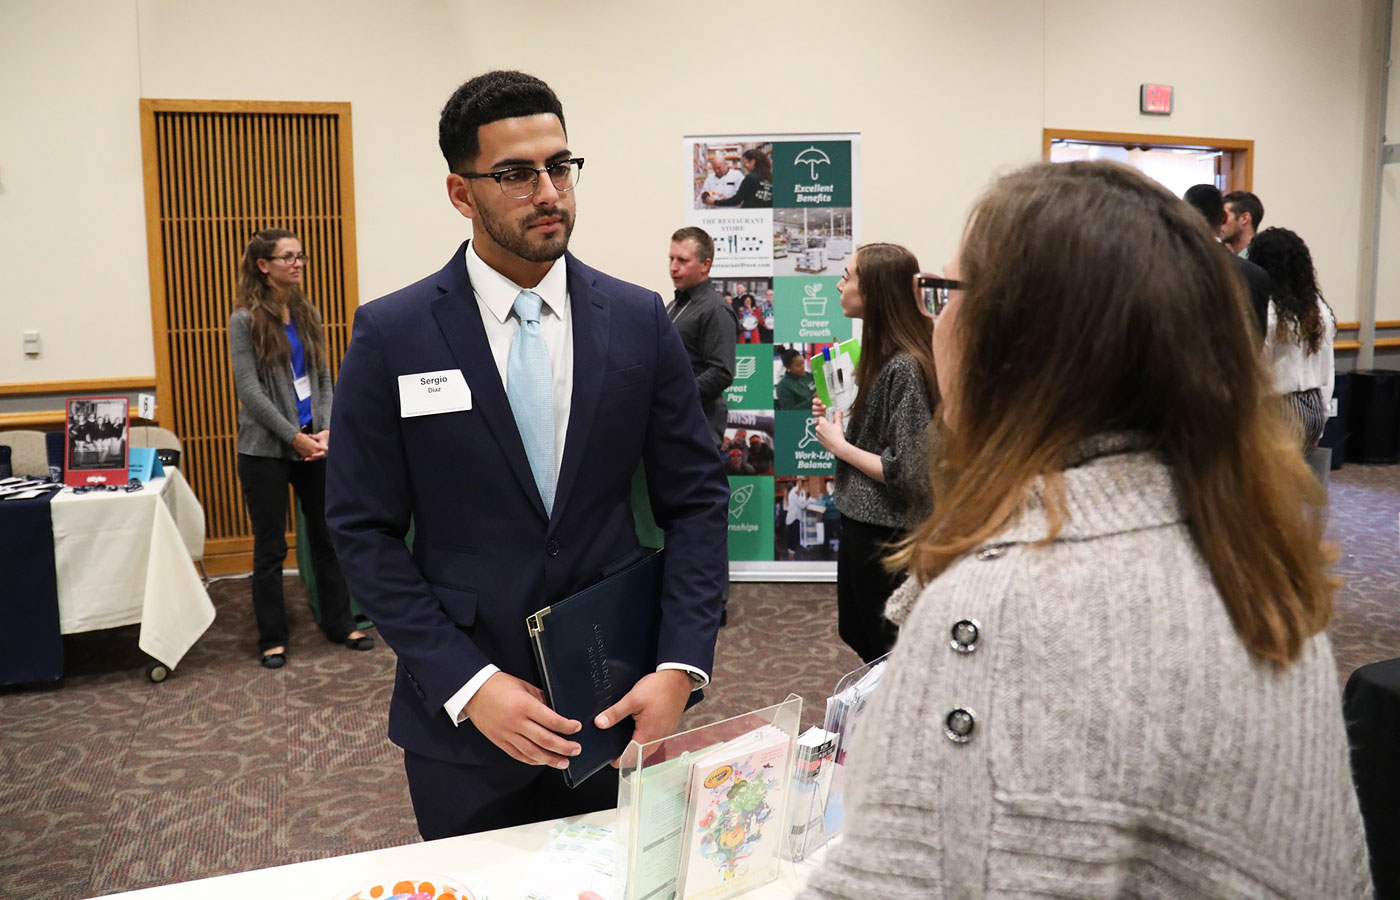 Sergio Diaz at the 2019 Career and Internship Fair